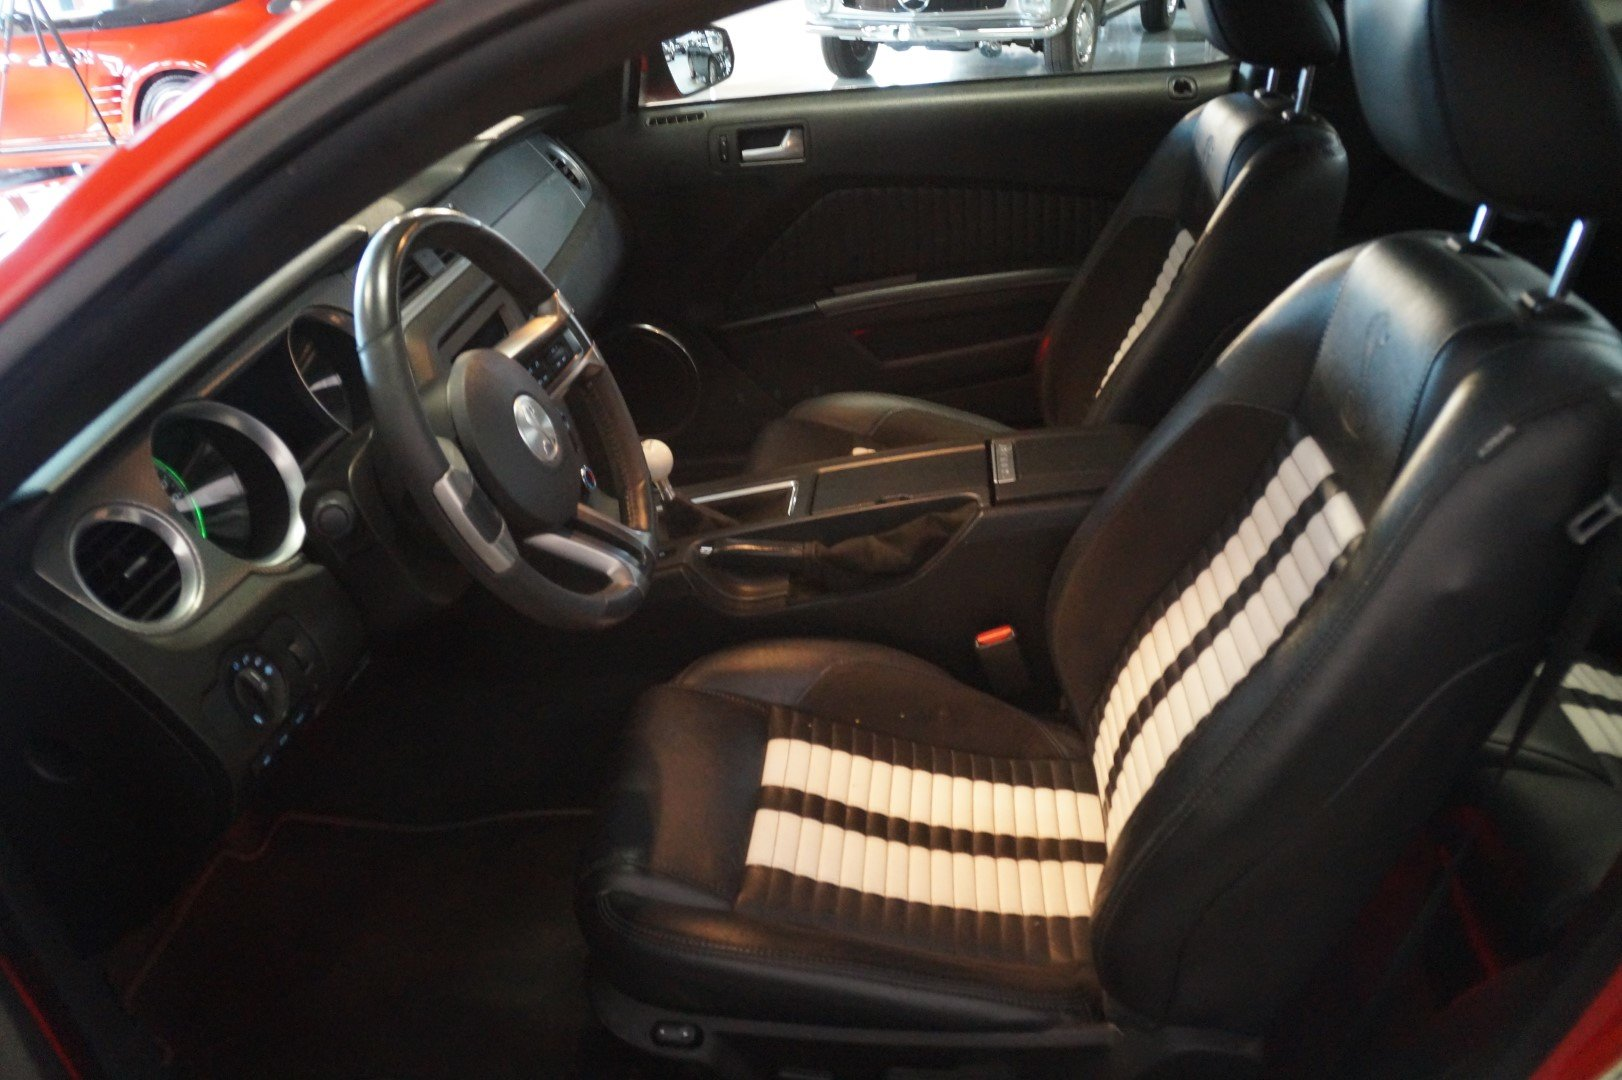 FORD MUSTANG Shelby GT500 SVT Performance Package (2011) For Sale (picture 2 of 6)